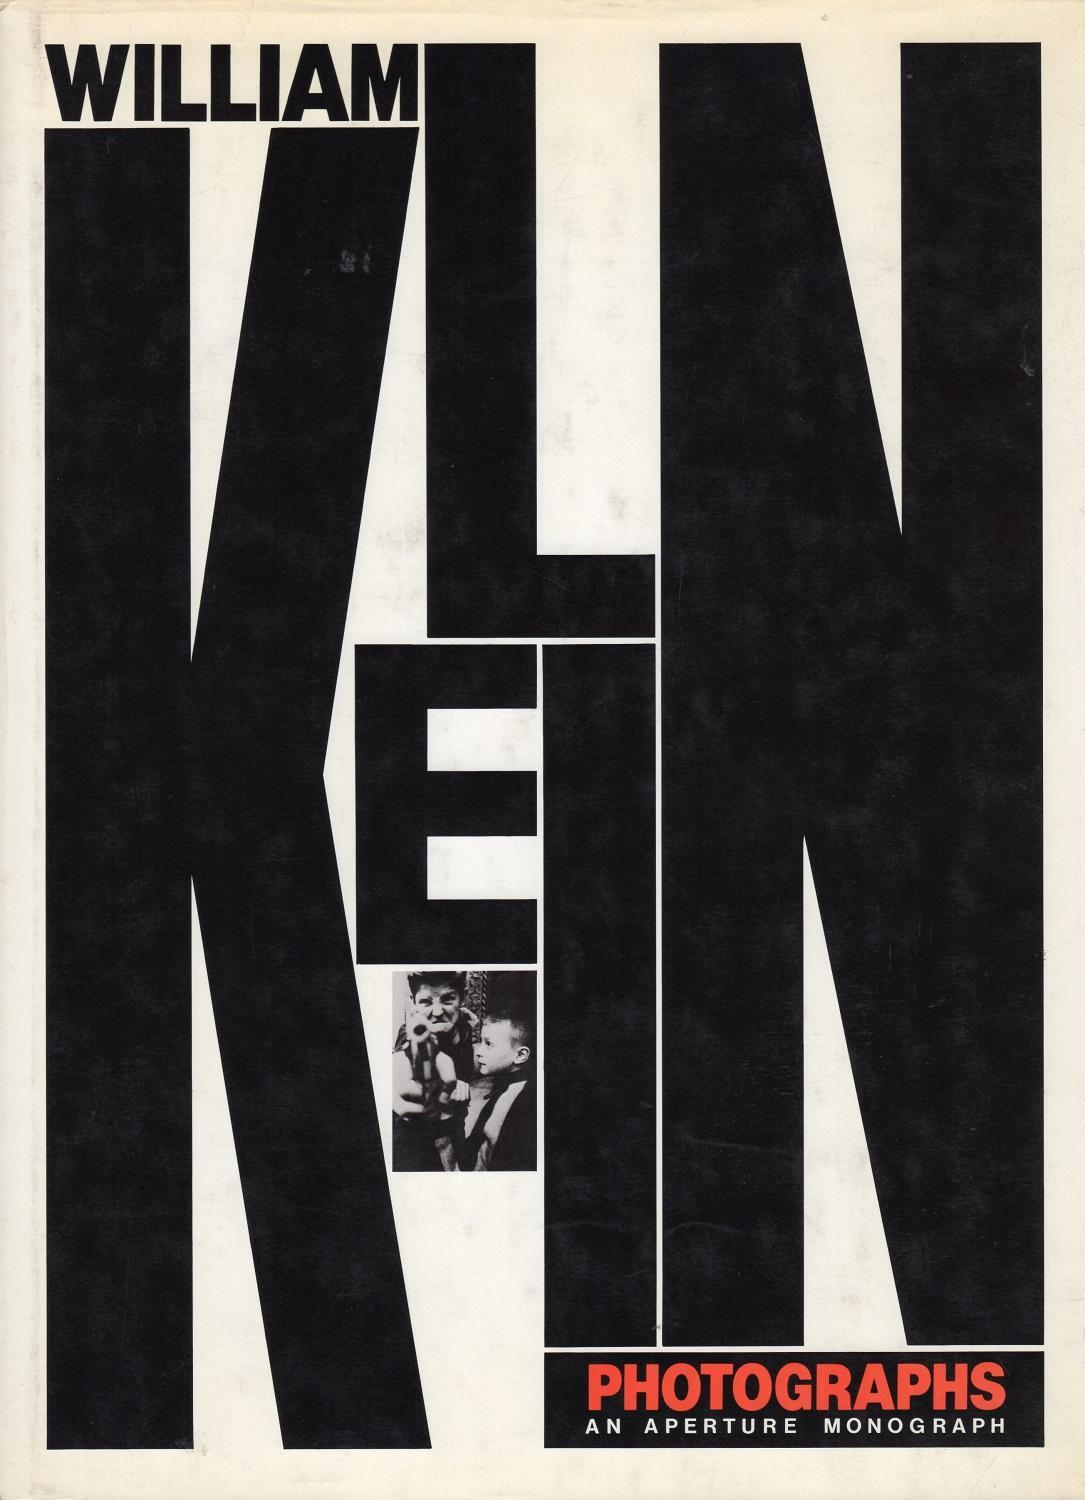 William Klein Photographs: An Aperture Monograph